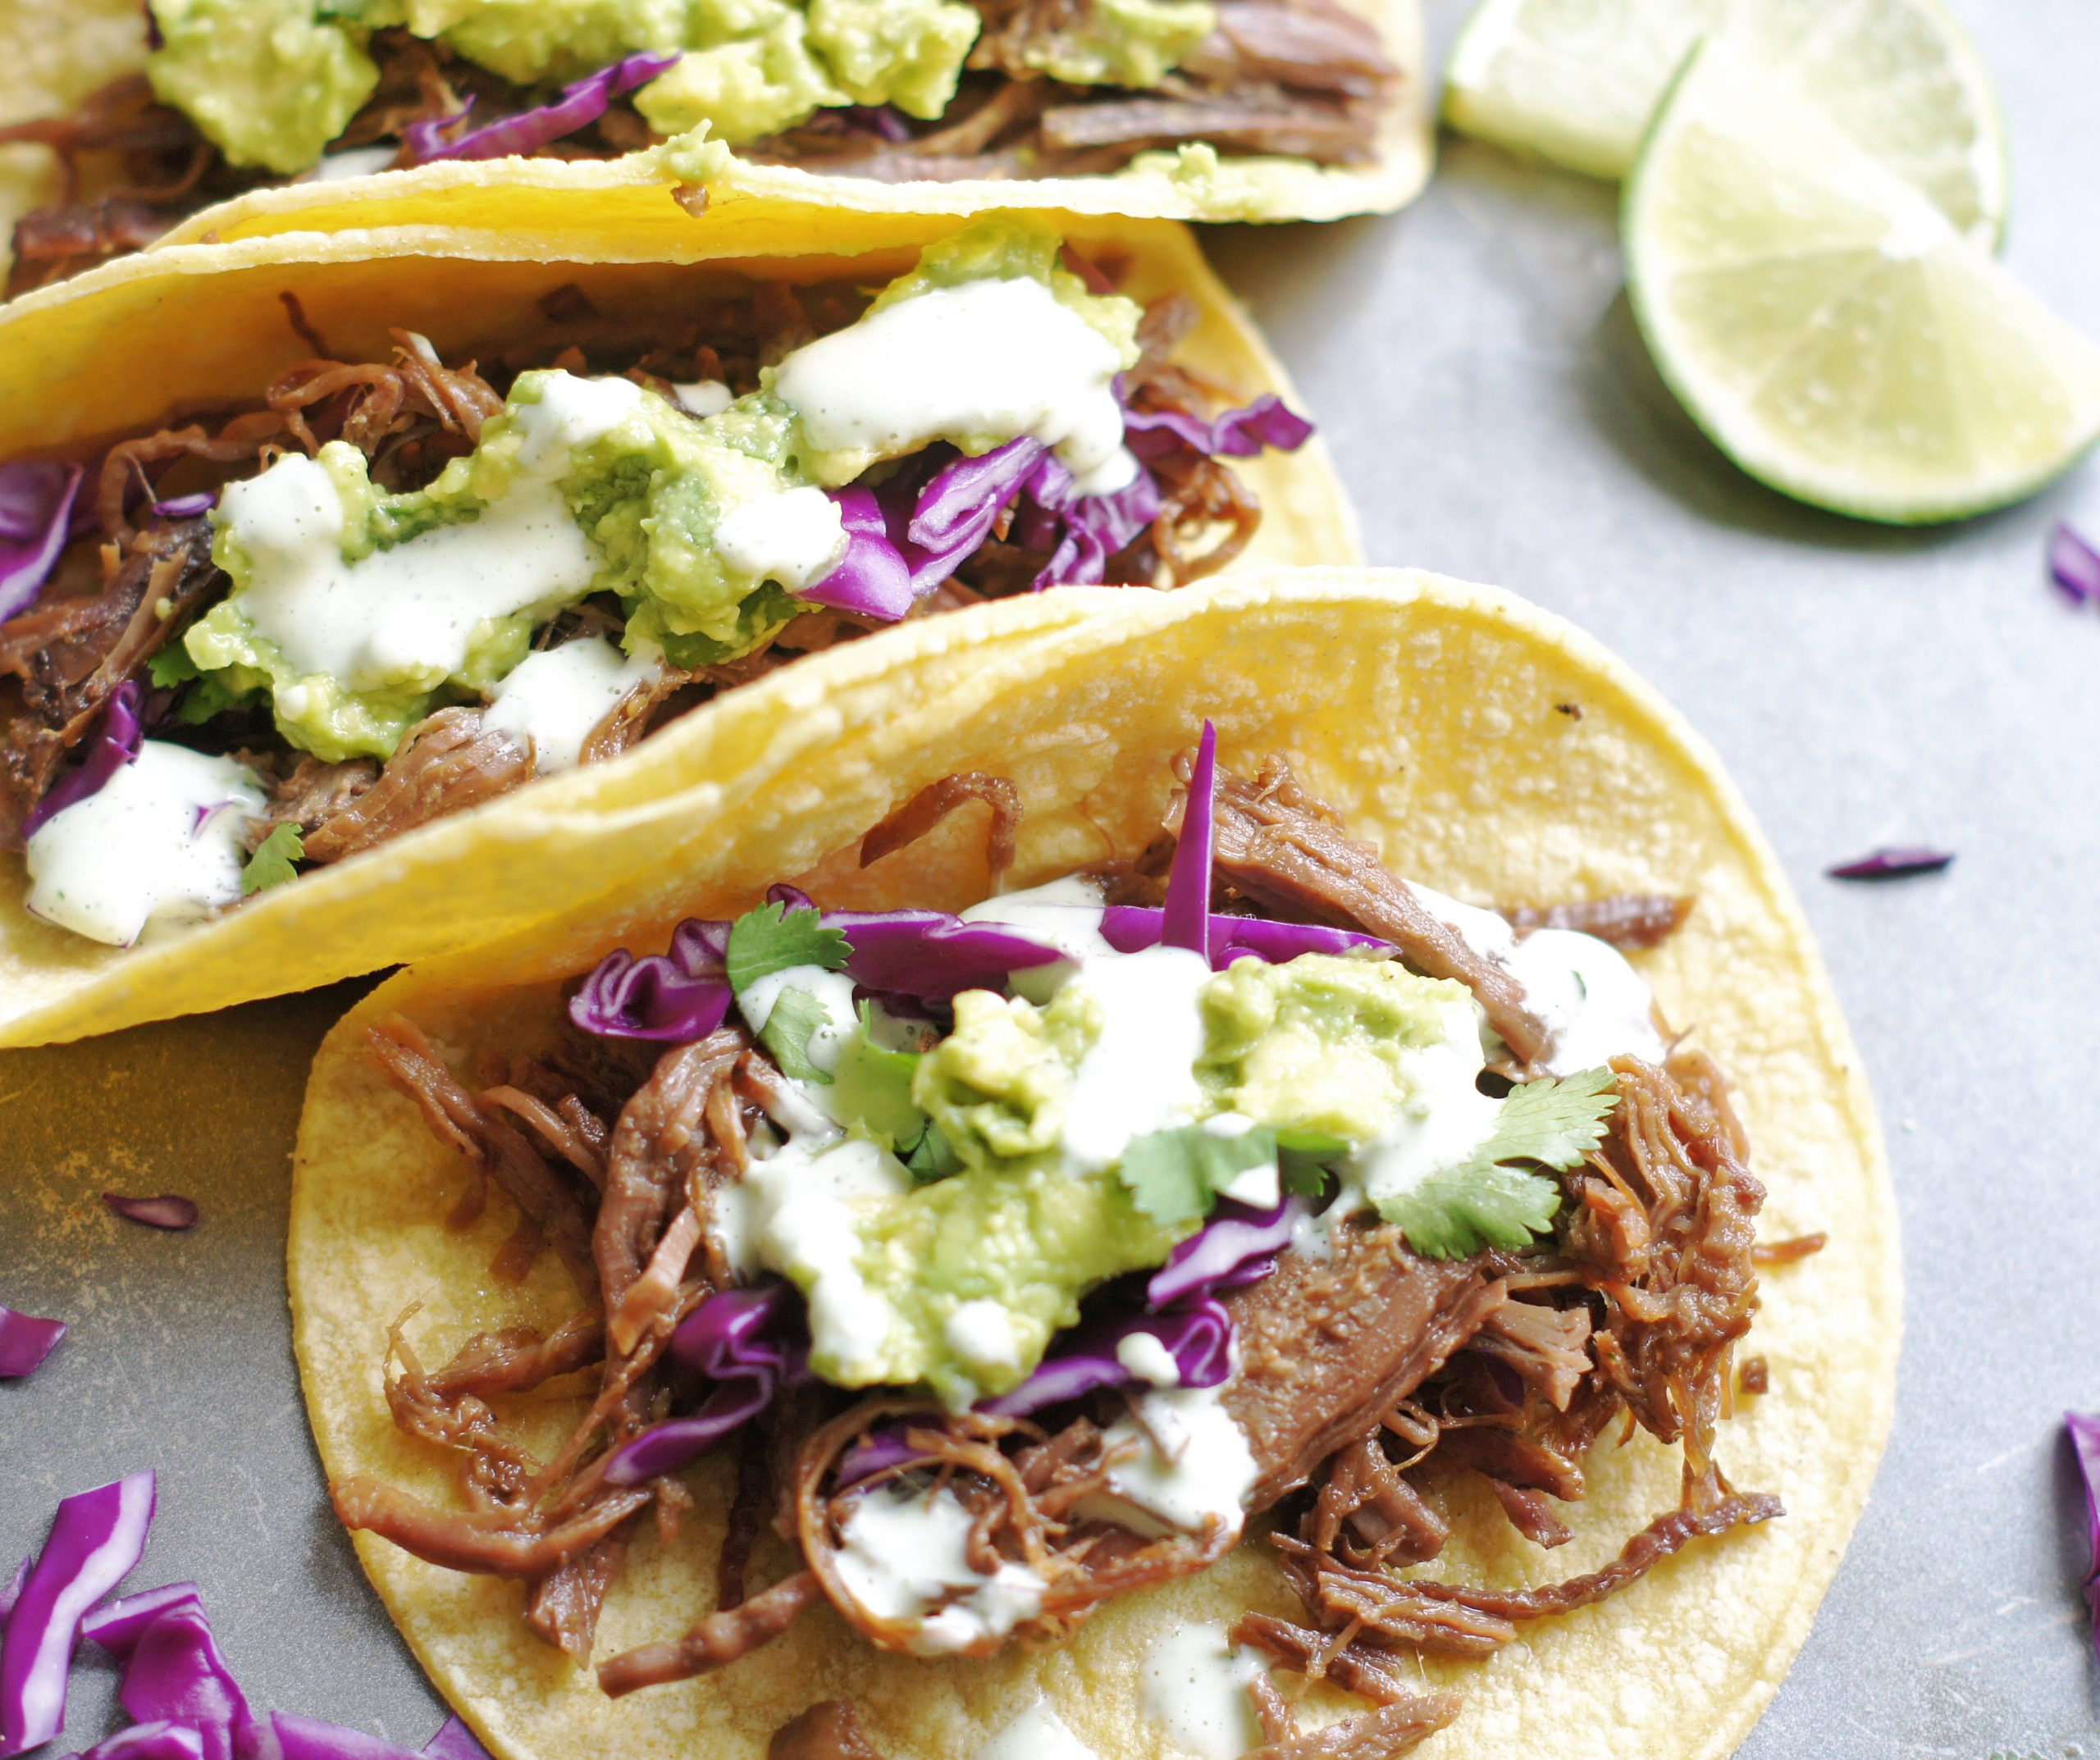 Flank steak tacos with toppings